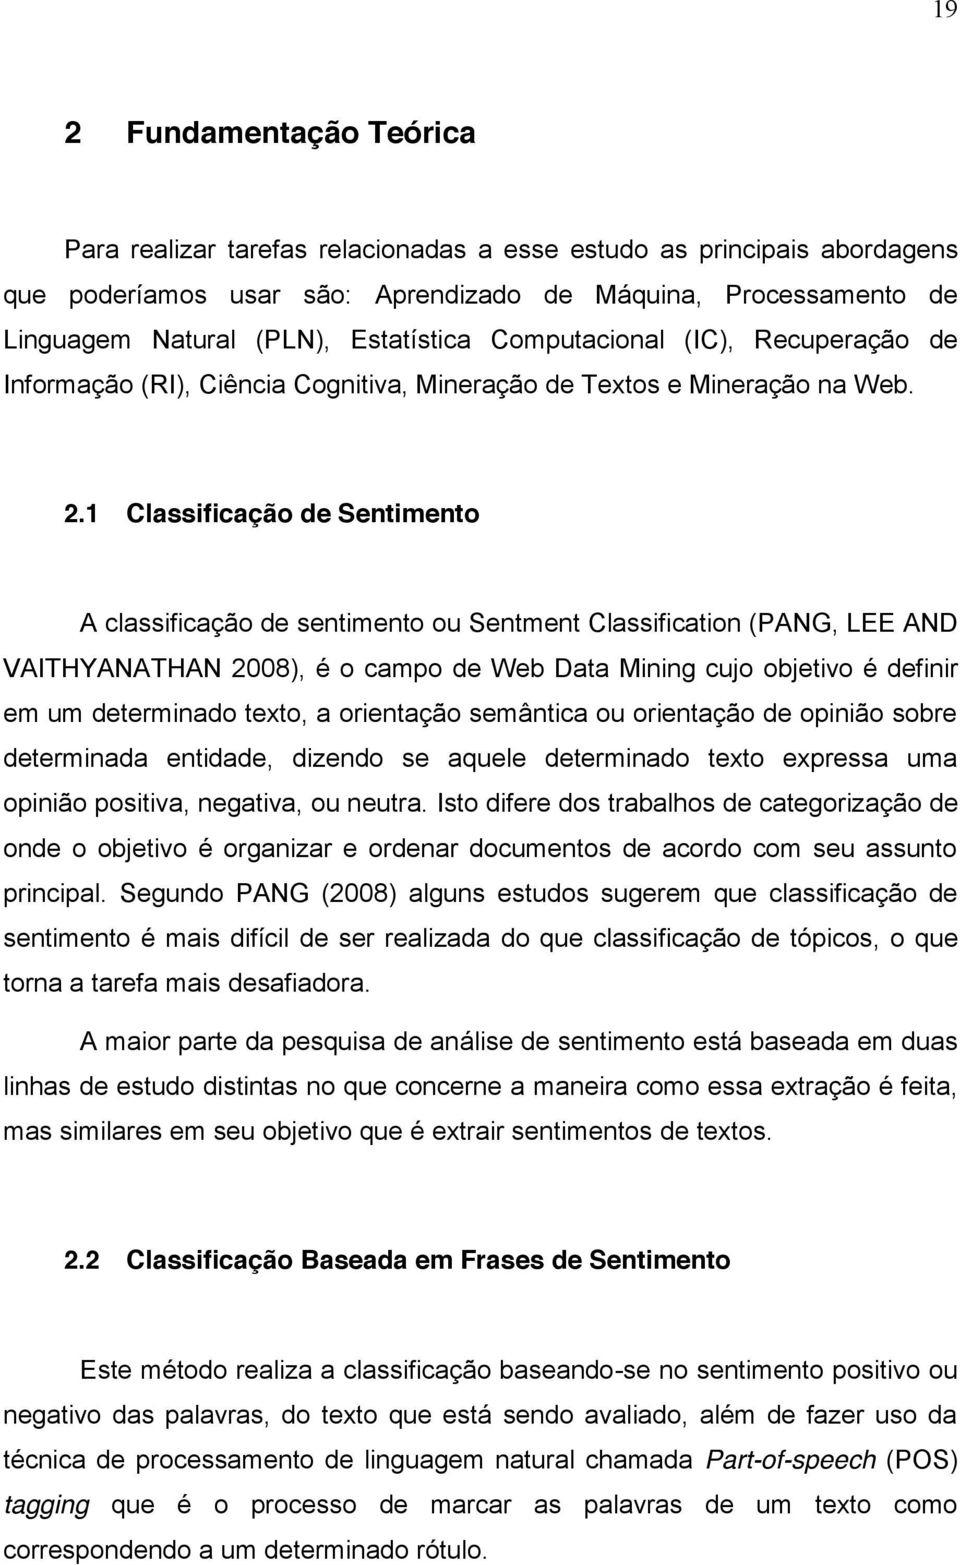 1 Classificação de Sentimento A classificação de sentimento ou Sentment Classification (PANG, LEE AND VAITHYANATHAN 2008), é o campo de Web Data Mining cujo objetivo é definir em um determinado